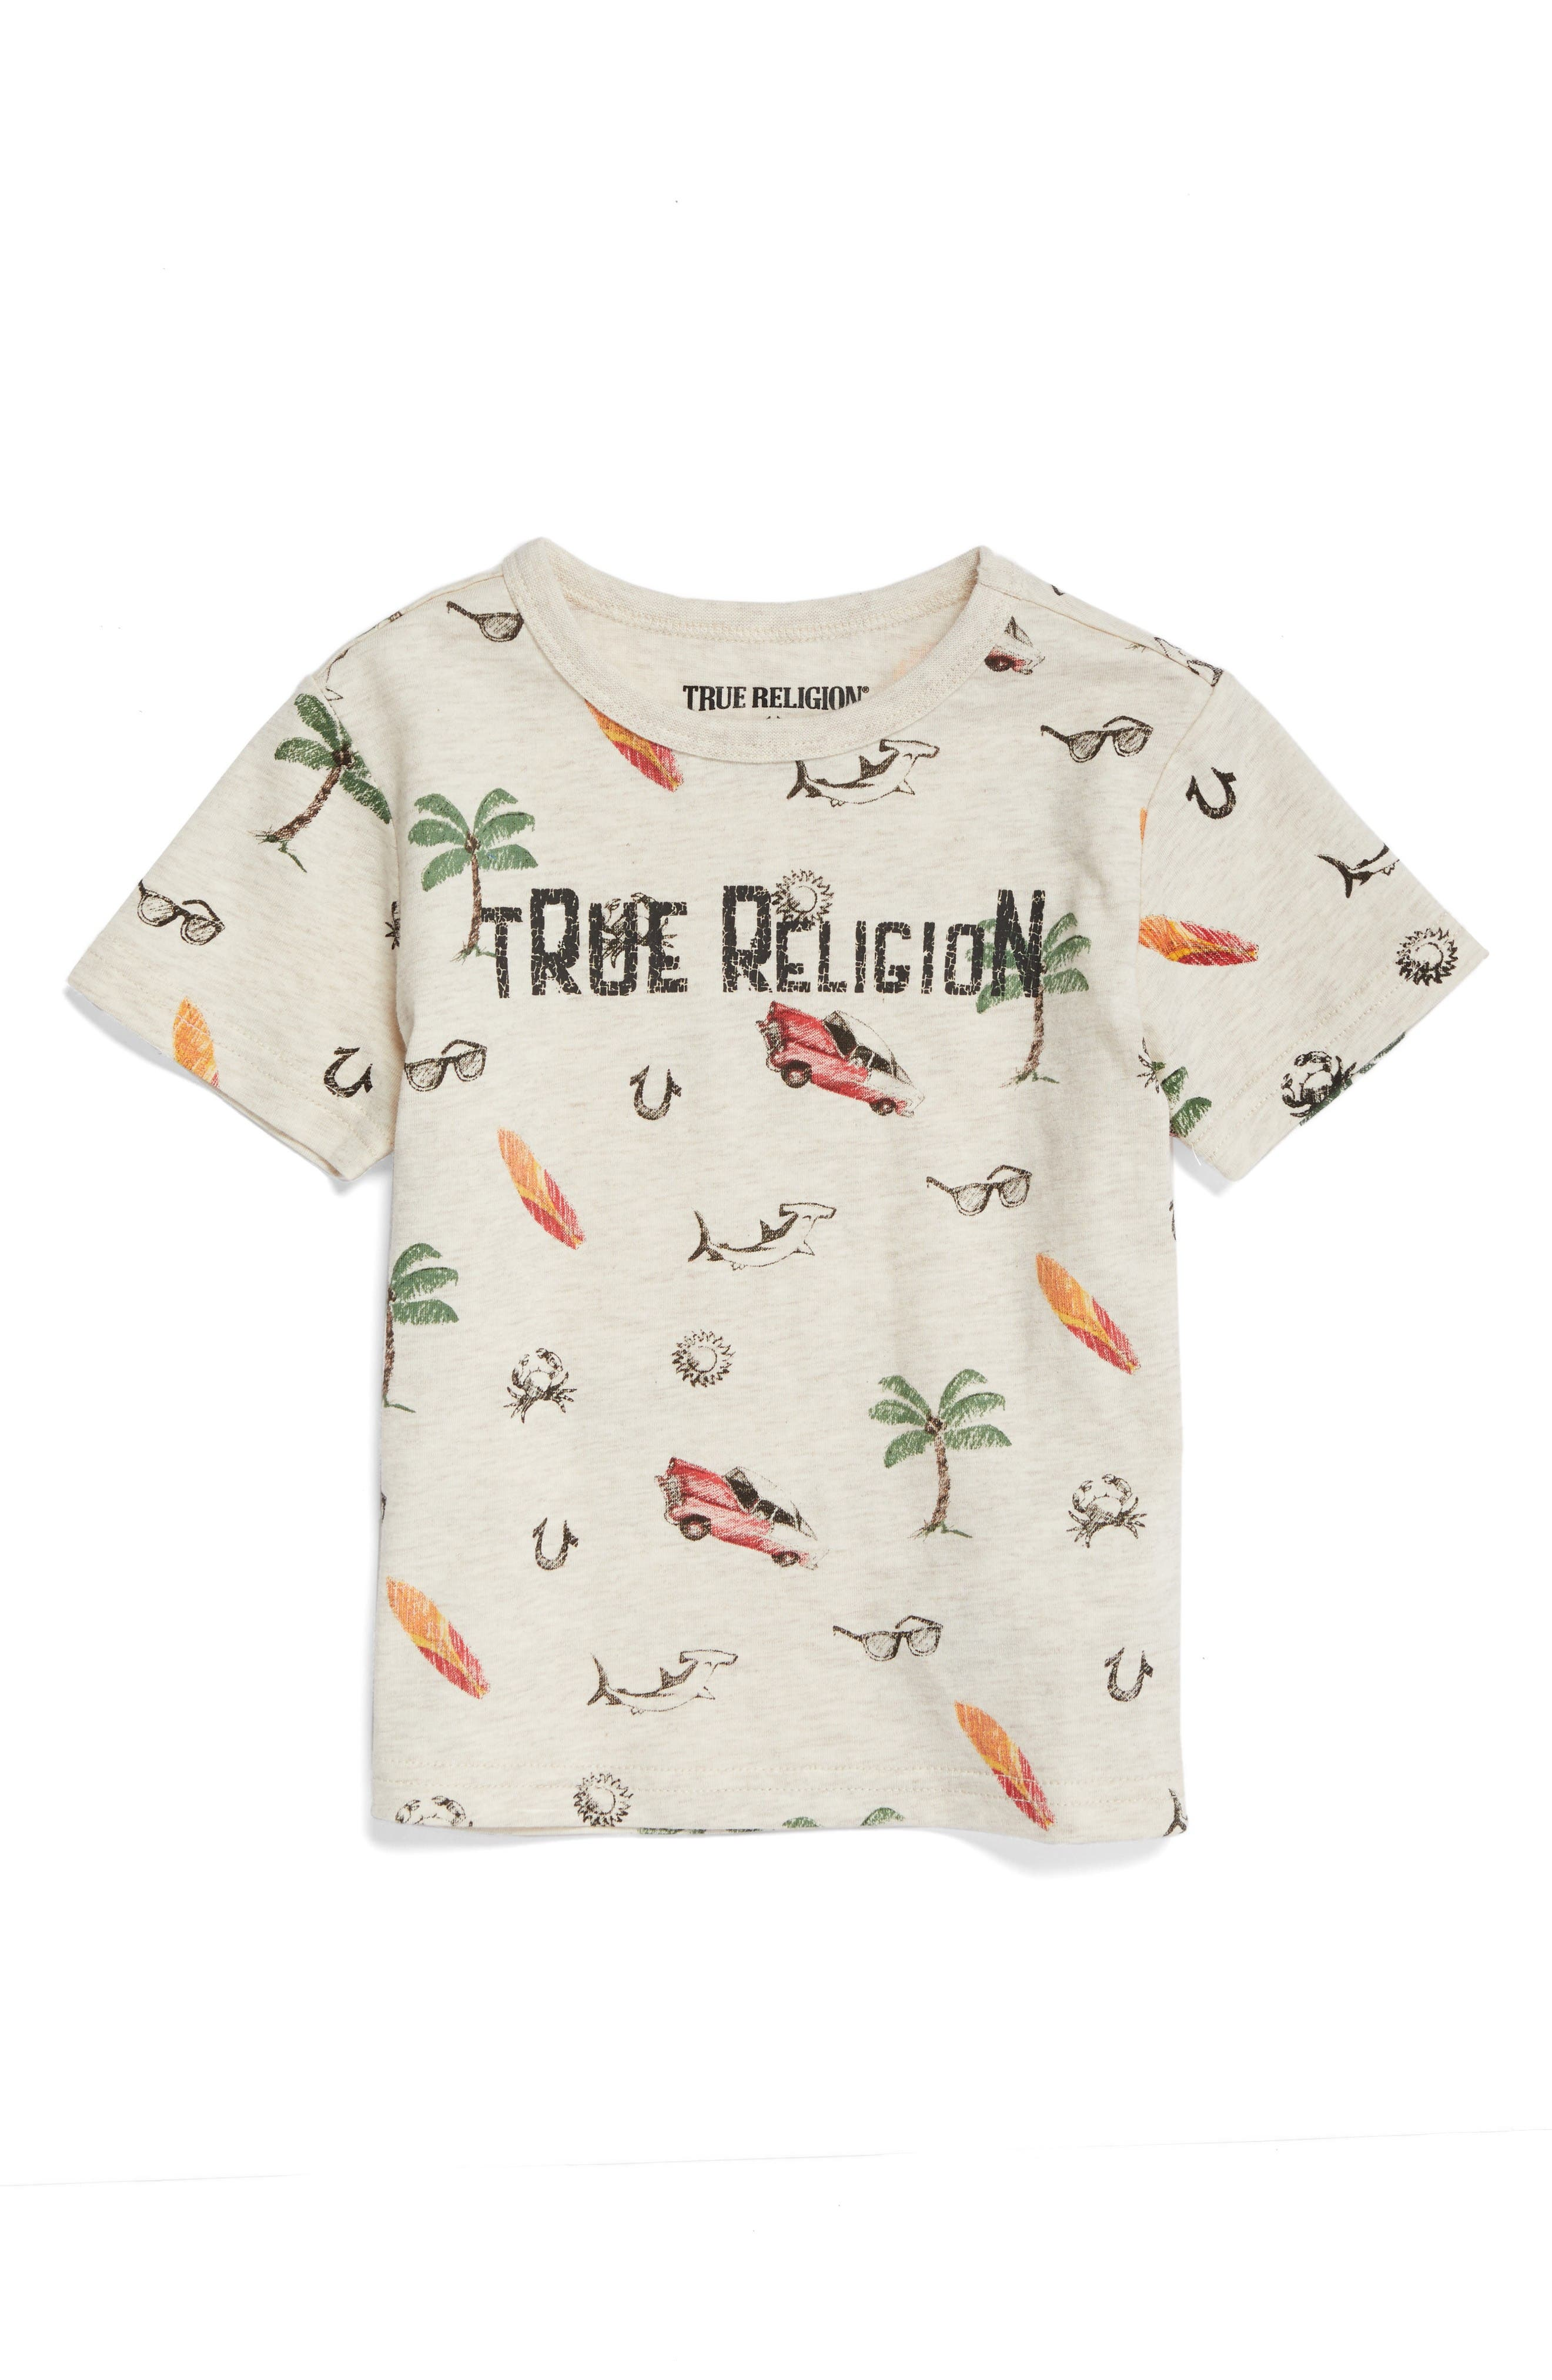 True Religion Retro Doodle T-Shirt,                             Main thumbnail 1, color,                             Oatmeal Heather